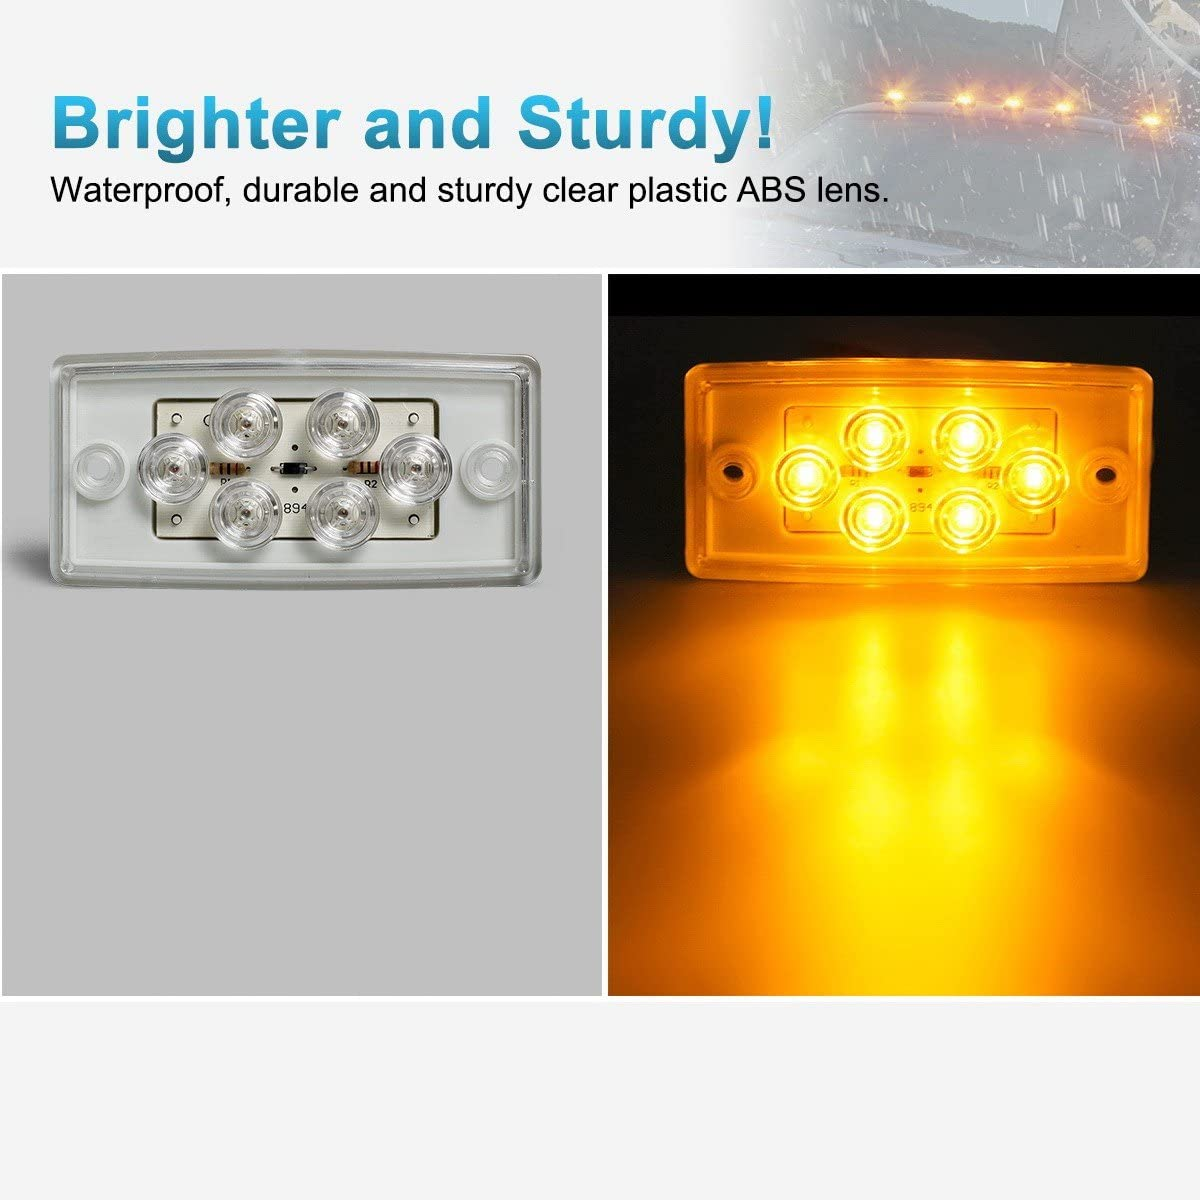 NPAUTO 5pcs Freightliner Cab Lights 6 LED Amber Roof Clearance Marker Light Rectangle Top Running Light for Freightliner Century Columbia Volvo Truck Trailer Camper Waterproof, Flush Mount